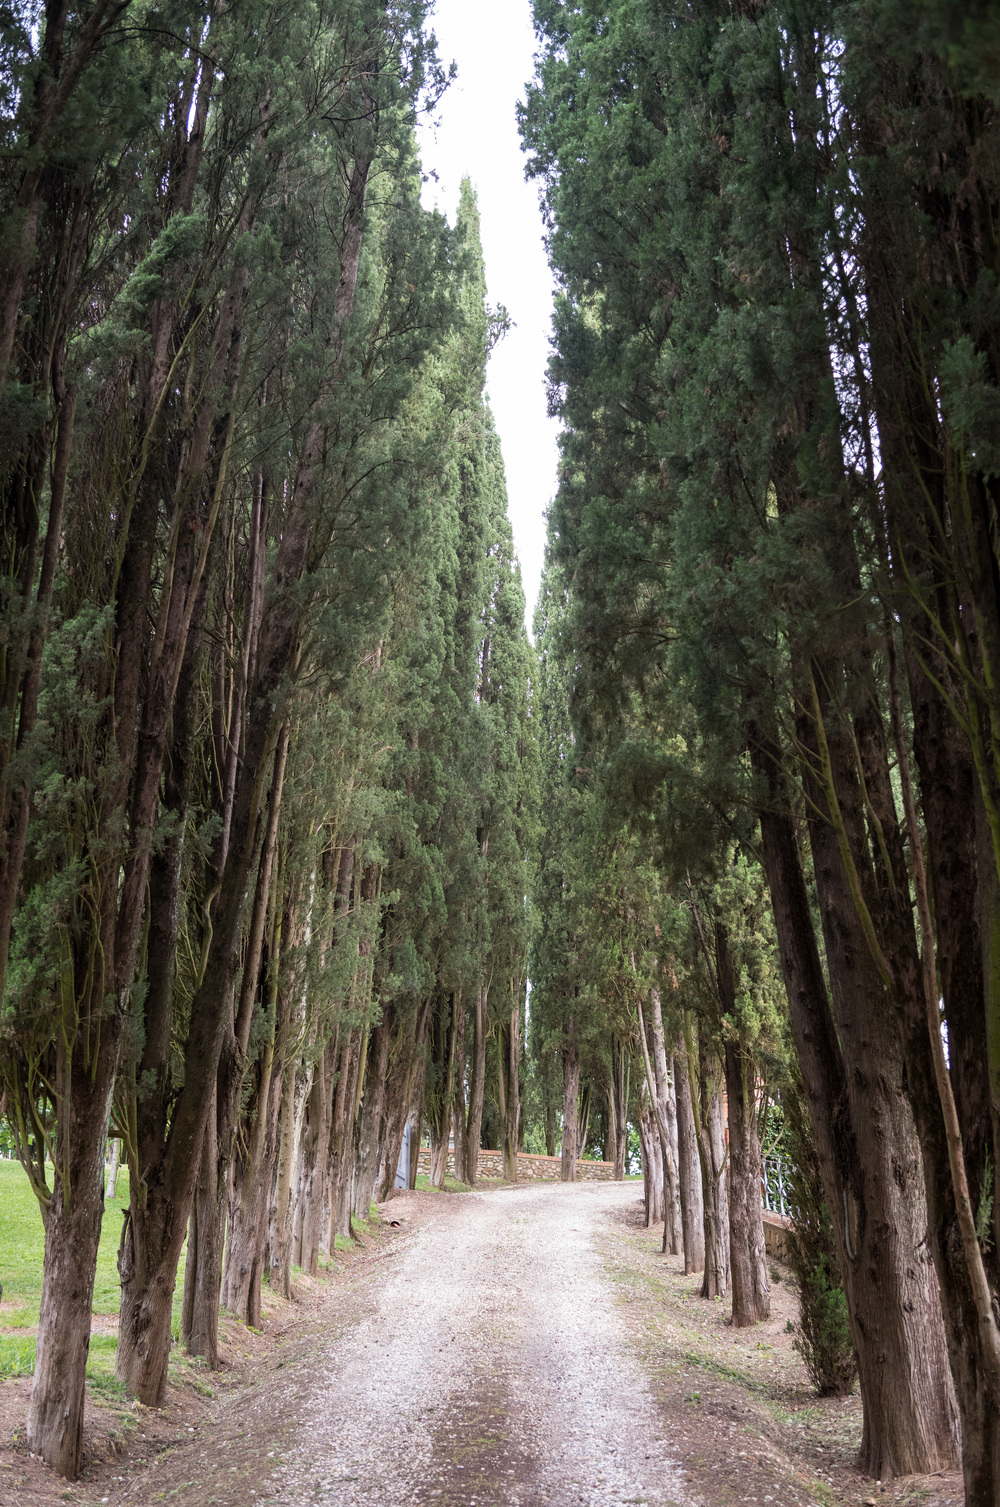 Cypress-lined roads all over Chianti